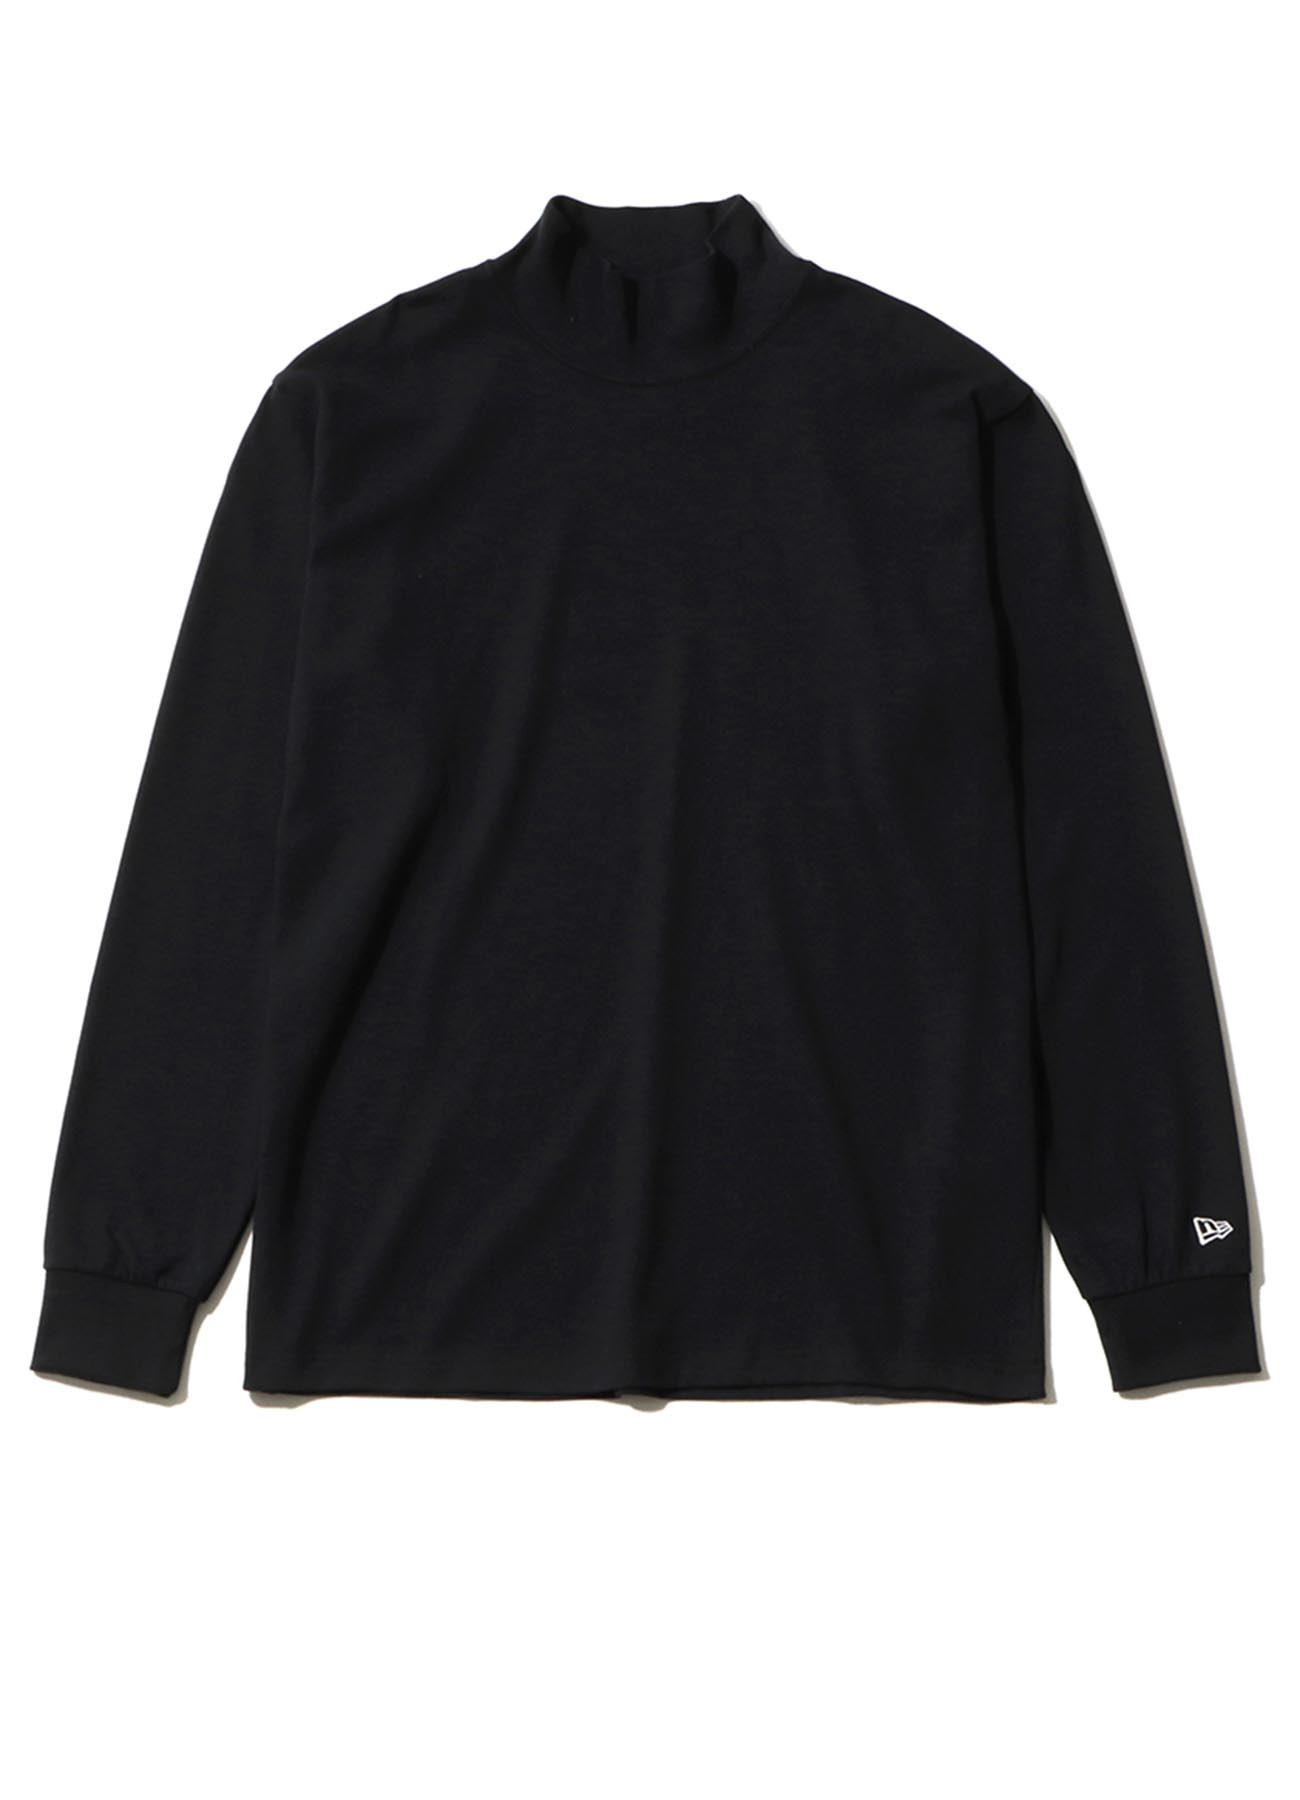 Yohji Yamamoto × New Era MINI LOGO HIGH COLLAR L/S PERFORMANCE TEE